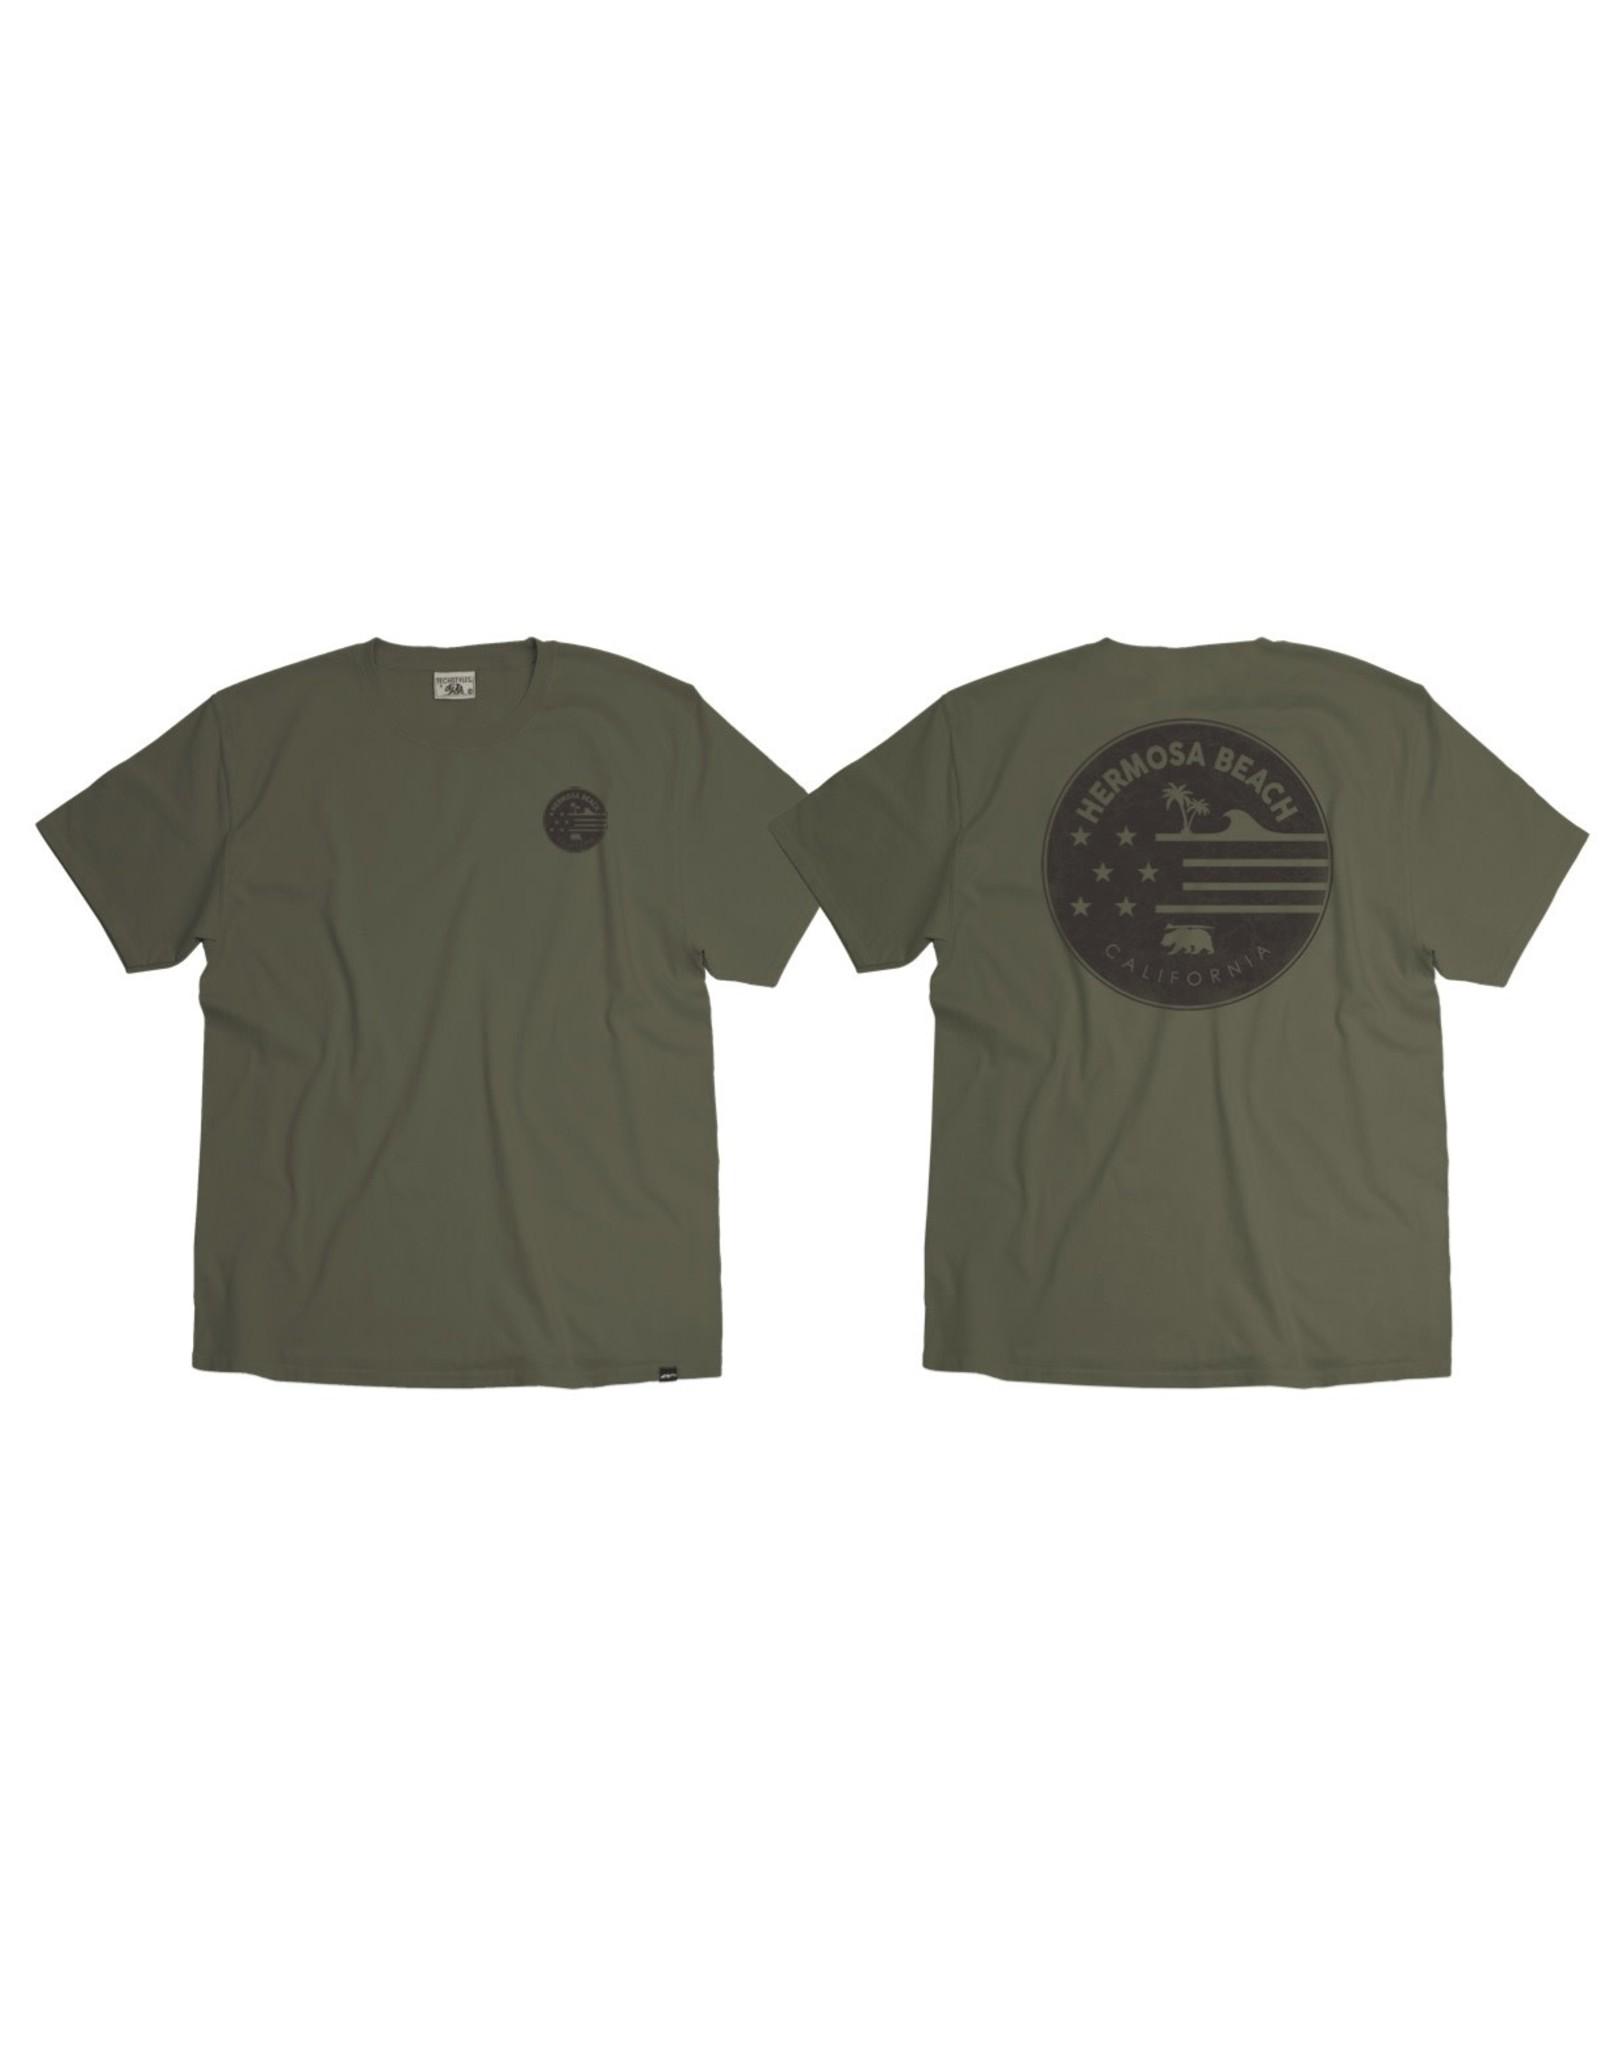 Techstyles #111 SS THE EXPLORER TEE CACTUS 21327FB/LC